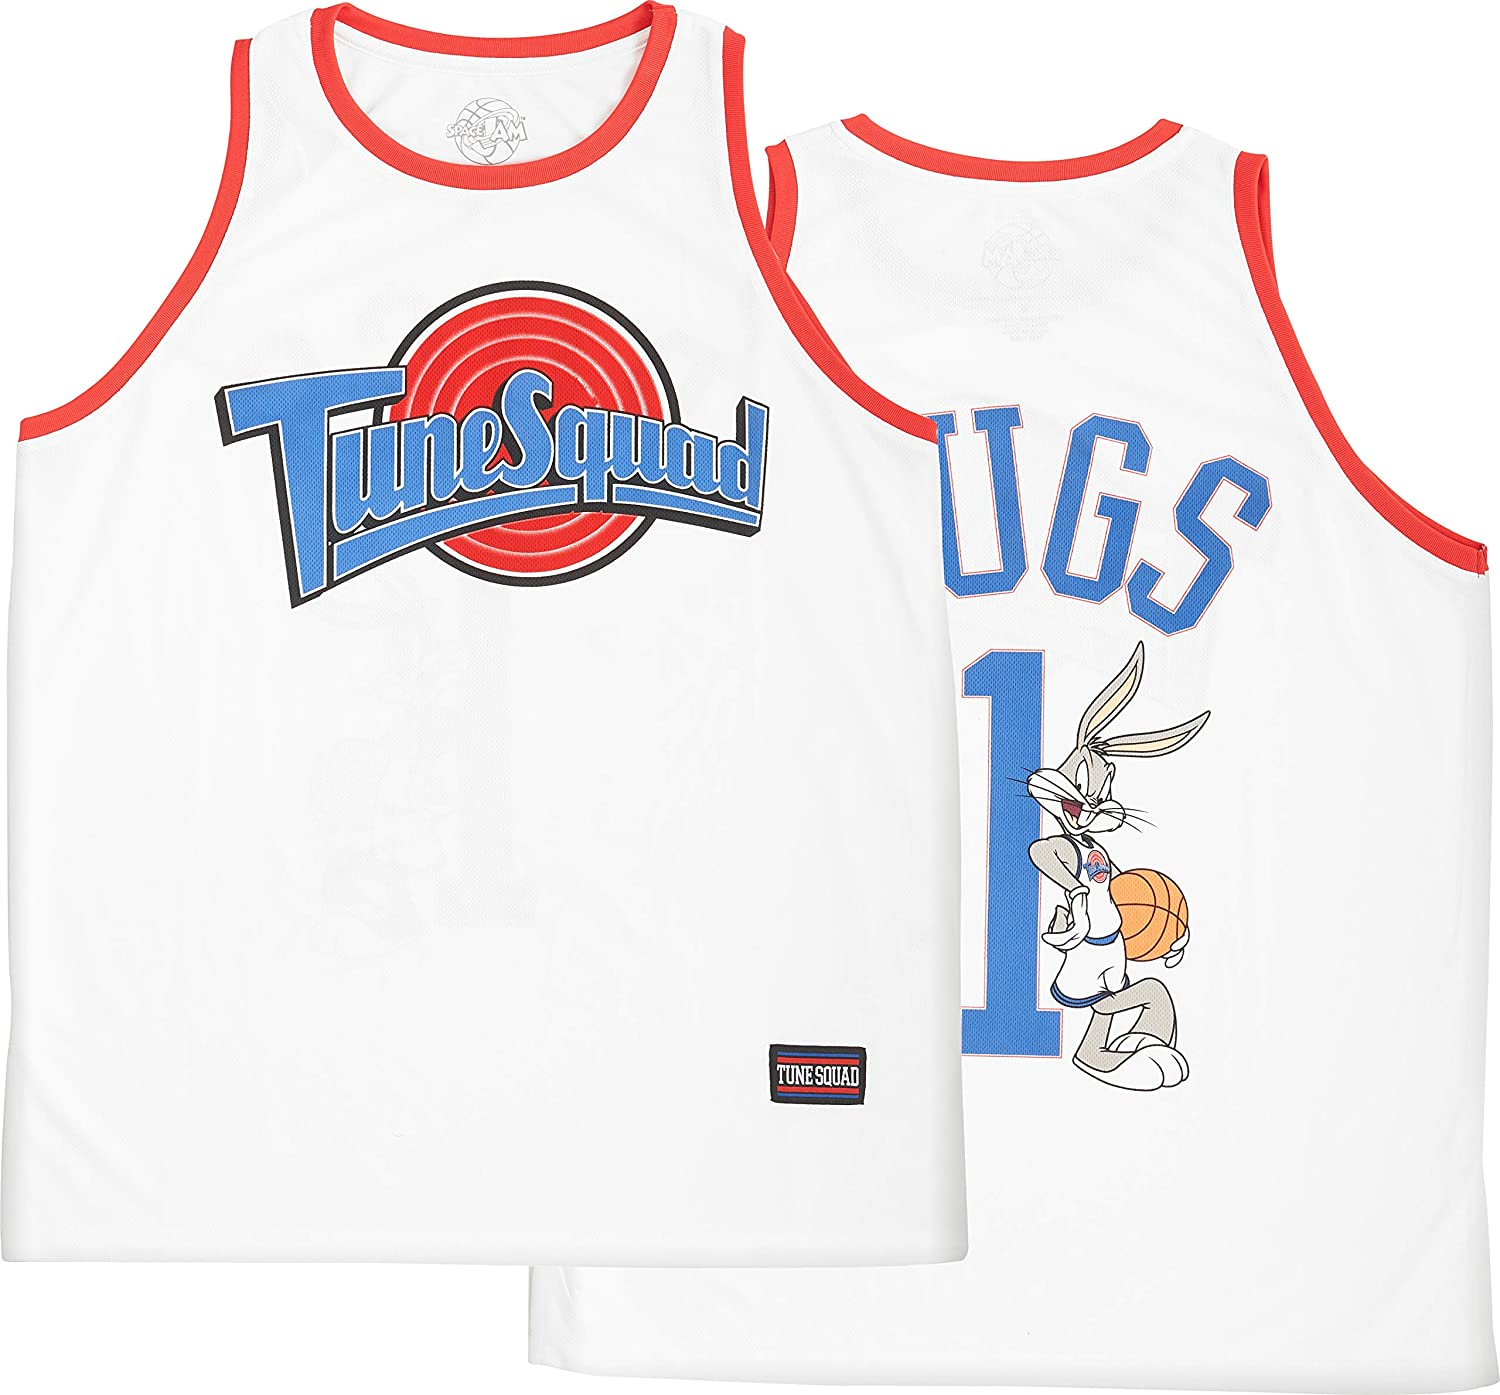 Tune Squad Bugs Bunny space jam Mens Basketball Jersey Monstars Jerseys